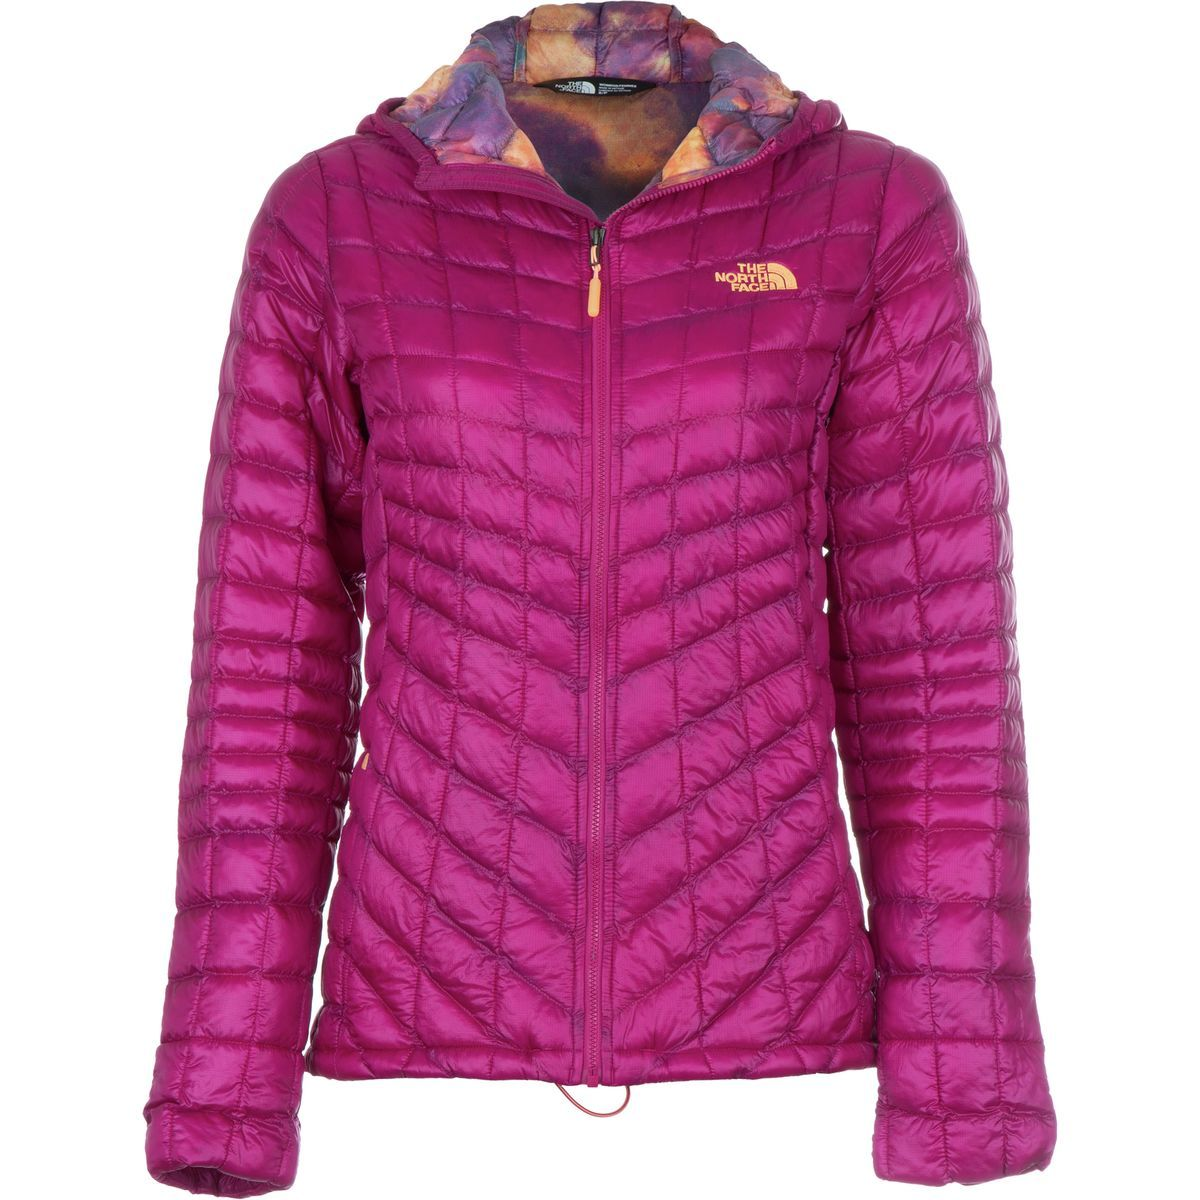 The North Face Thermoball Hooded Insulated Jacket Women S Dramatic Plum Geo Floral Print Hoodies Womens Jackets Jackets For Women [ 1200 x 1200 Pixel ]